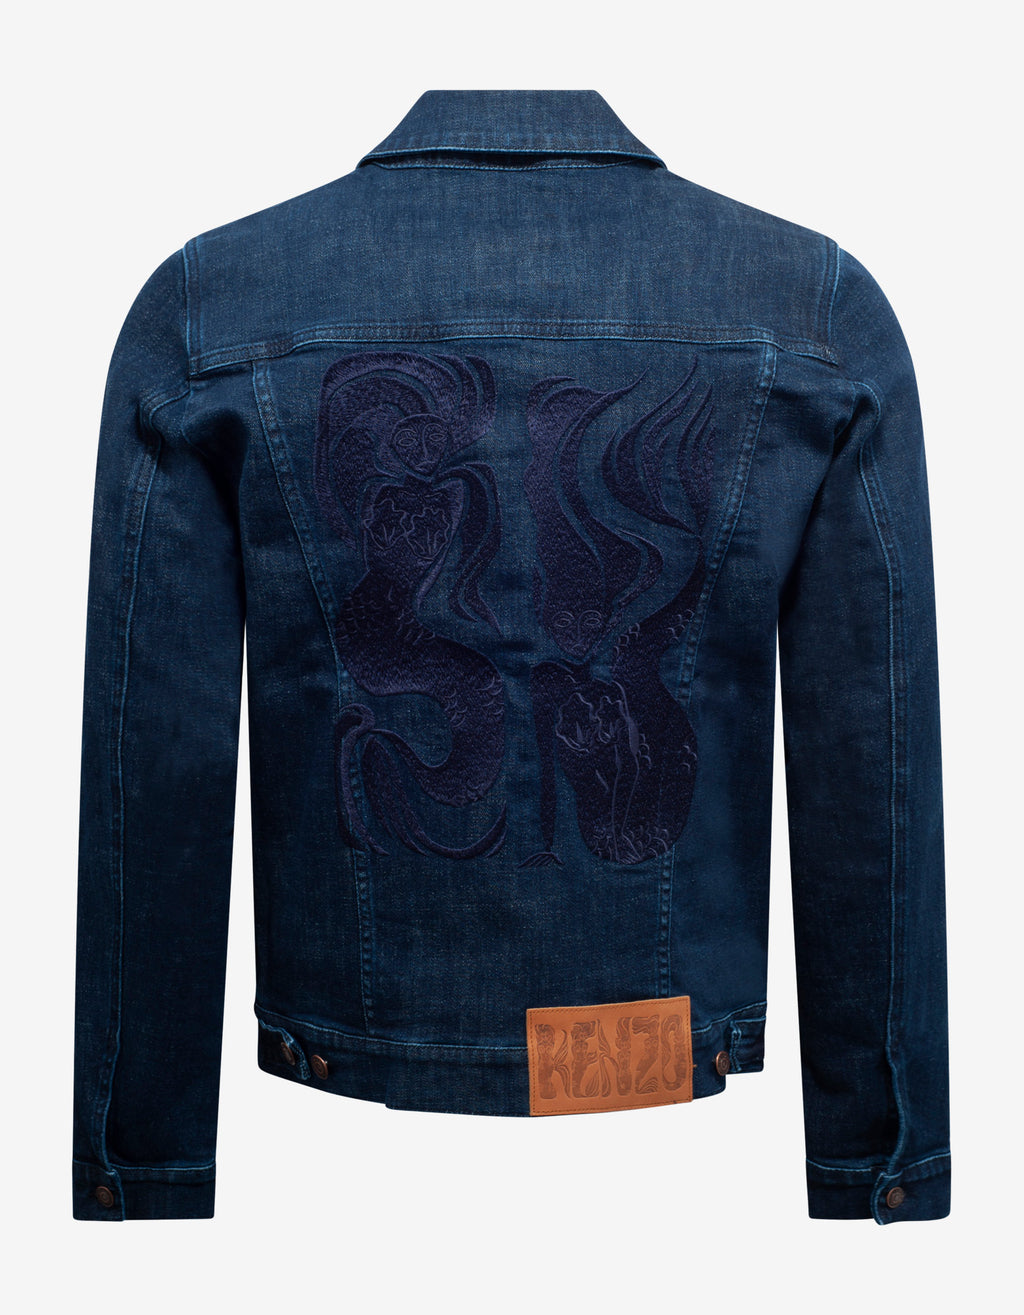 Navy Blue Mermaids Embroidery Denim Jacket